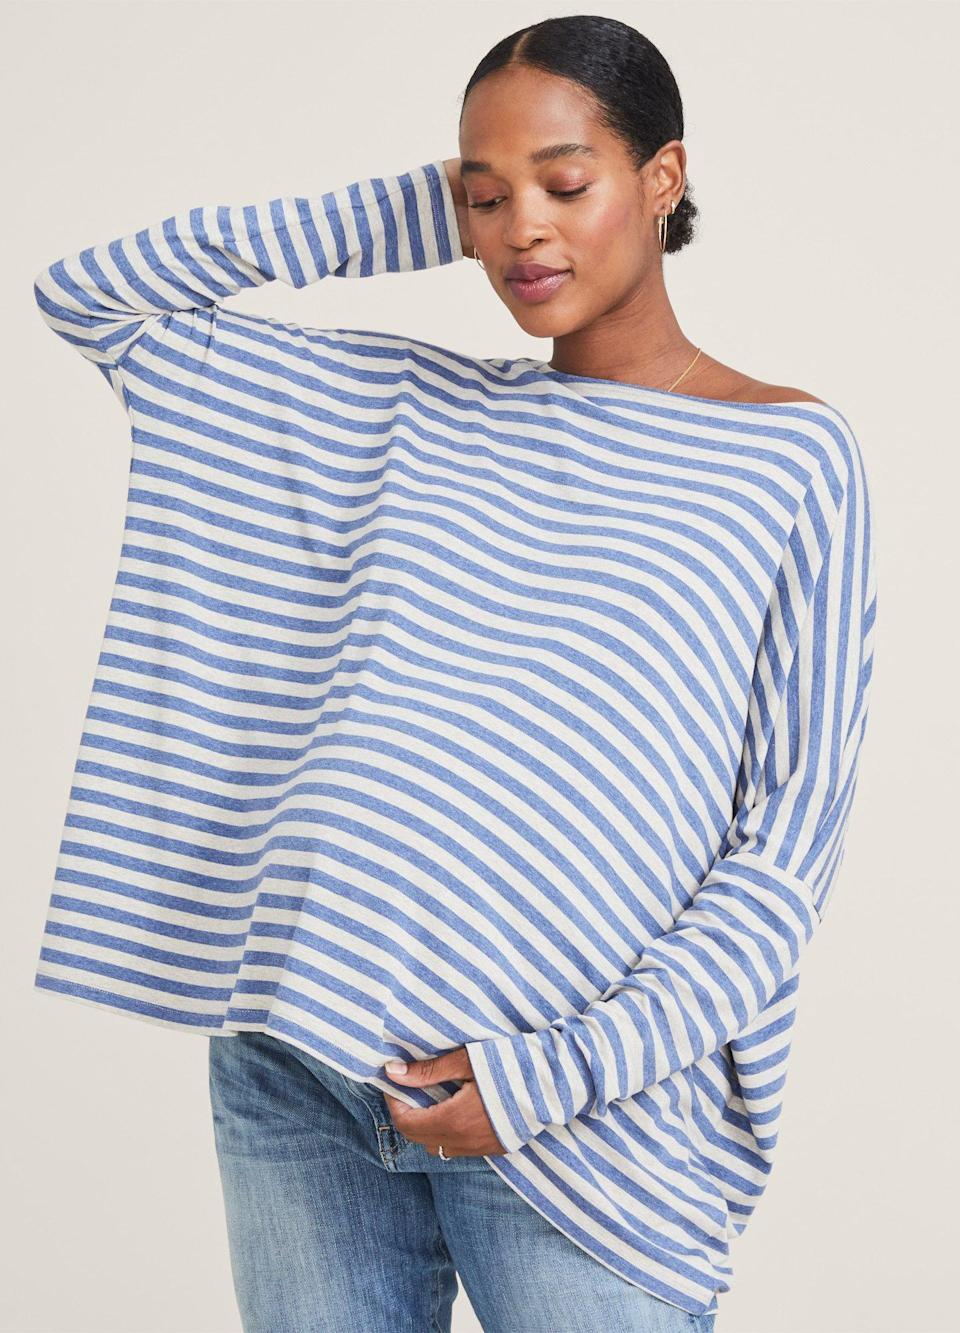 """$98, Hatch. <a href=""""https://www.hatchcollection.com/collections/new-arrivals/products/the-longsleeve-maternity-tee?variant=32966392610925?color=stream-oatmeal"""" rel=""""nofollow noopener"""" target=""""_blank"""" data-ylk=""""slk:Get it now!"""" class=""""link rapid-noclick-resp"""">Get it now!</a>"""